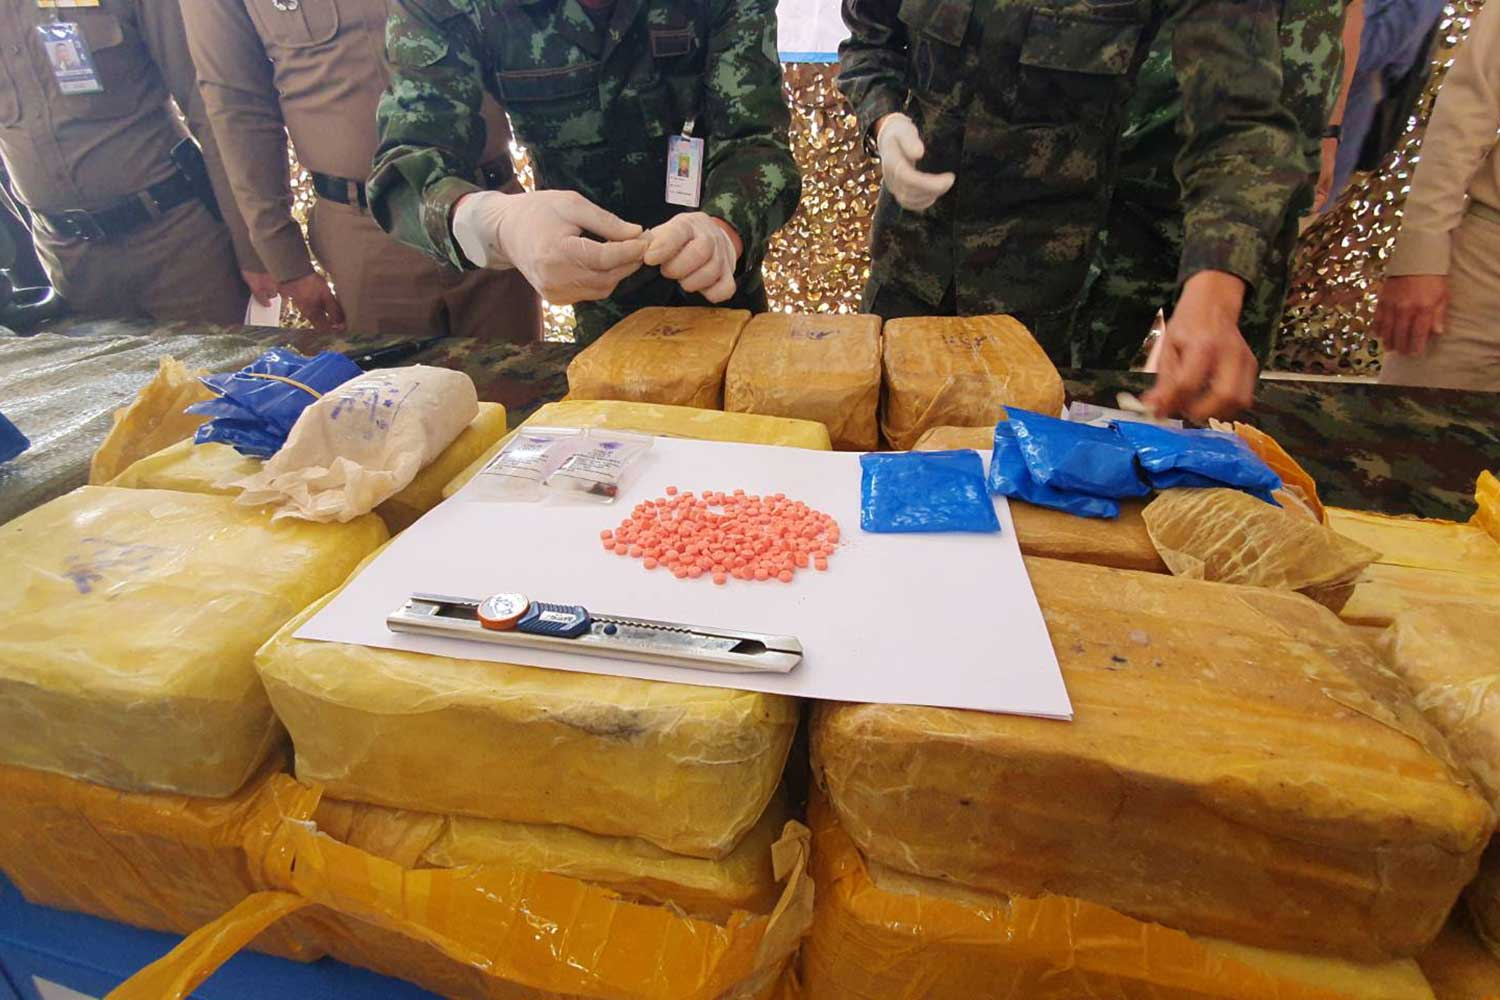 Soldiers display seized speed pills during a media briefing in Chiang Rai on Saturday. Three men are in custody. (Photo by Chinnapat Chaimol)